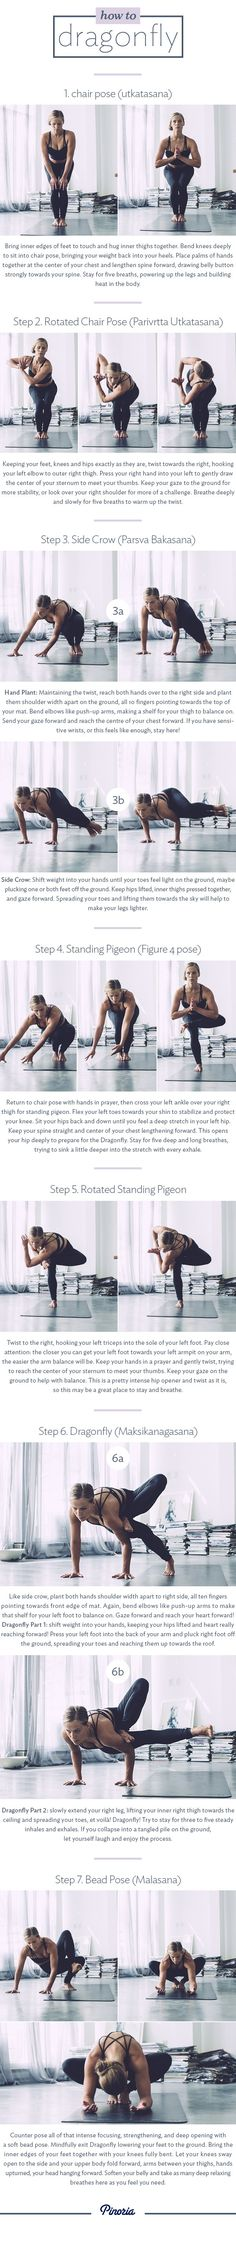 Best workout tip : Yoga Poses & Workouts For Beginners: How to Dragonfly in seven steps Ashtanga Yoga, Vinyasa Yoga, Sanftes Yoga, Sup Yoga, Yoga Moves, Yoga Flow, Yoga Exercises, Yoga Bra, Fitness Workouts